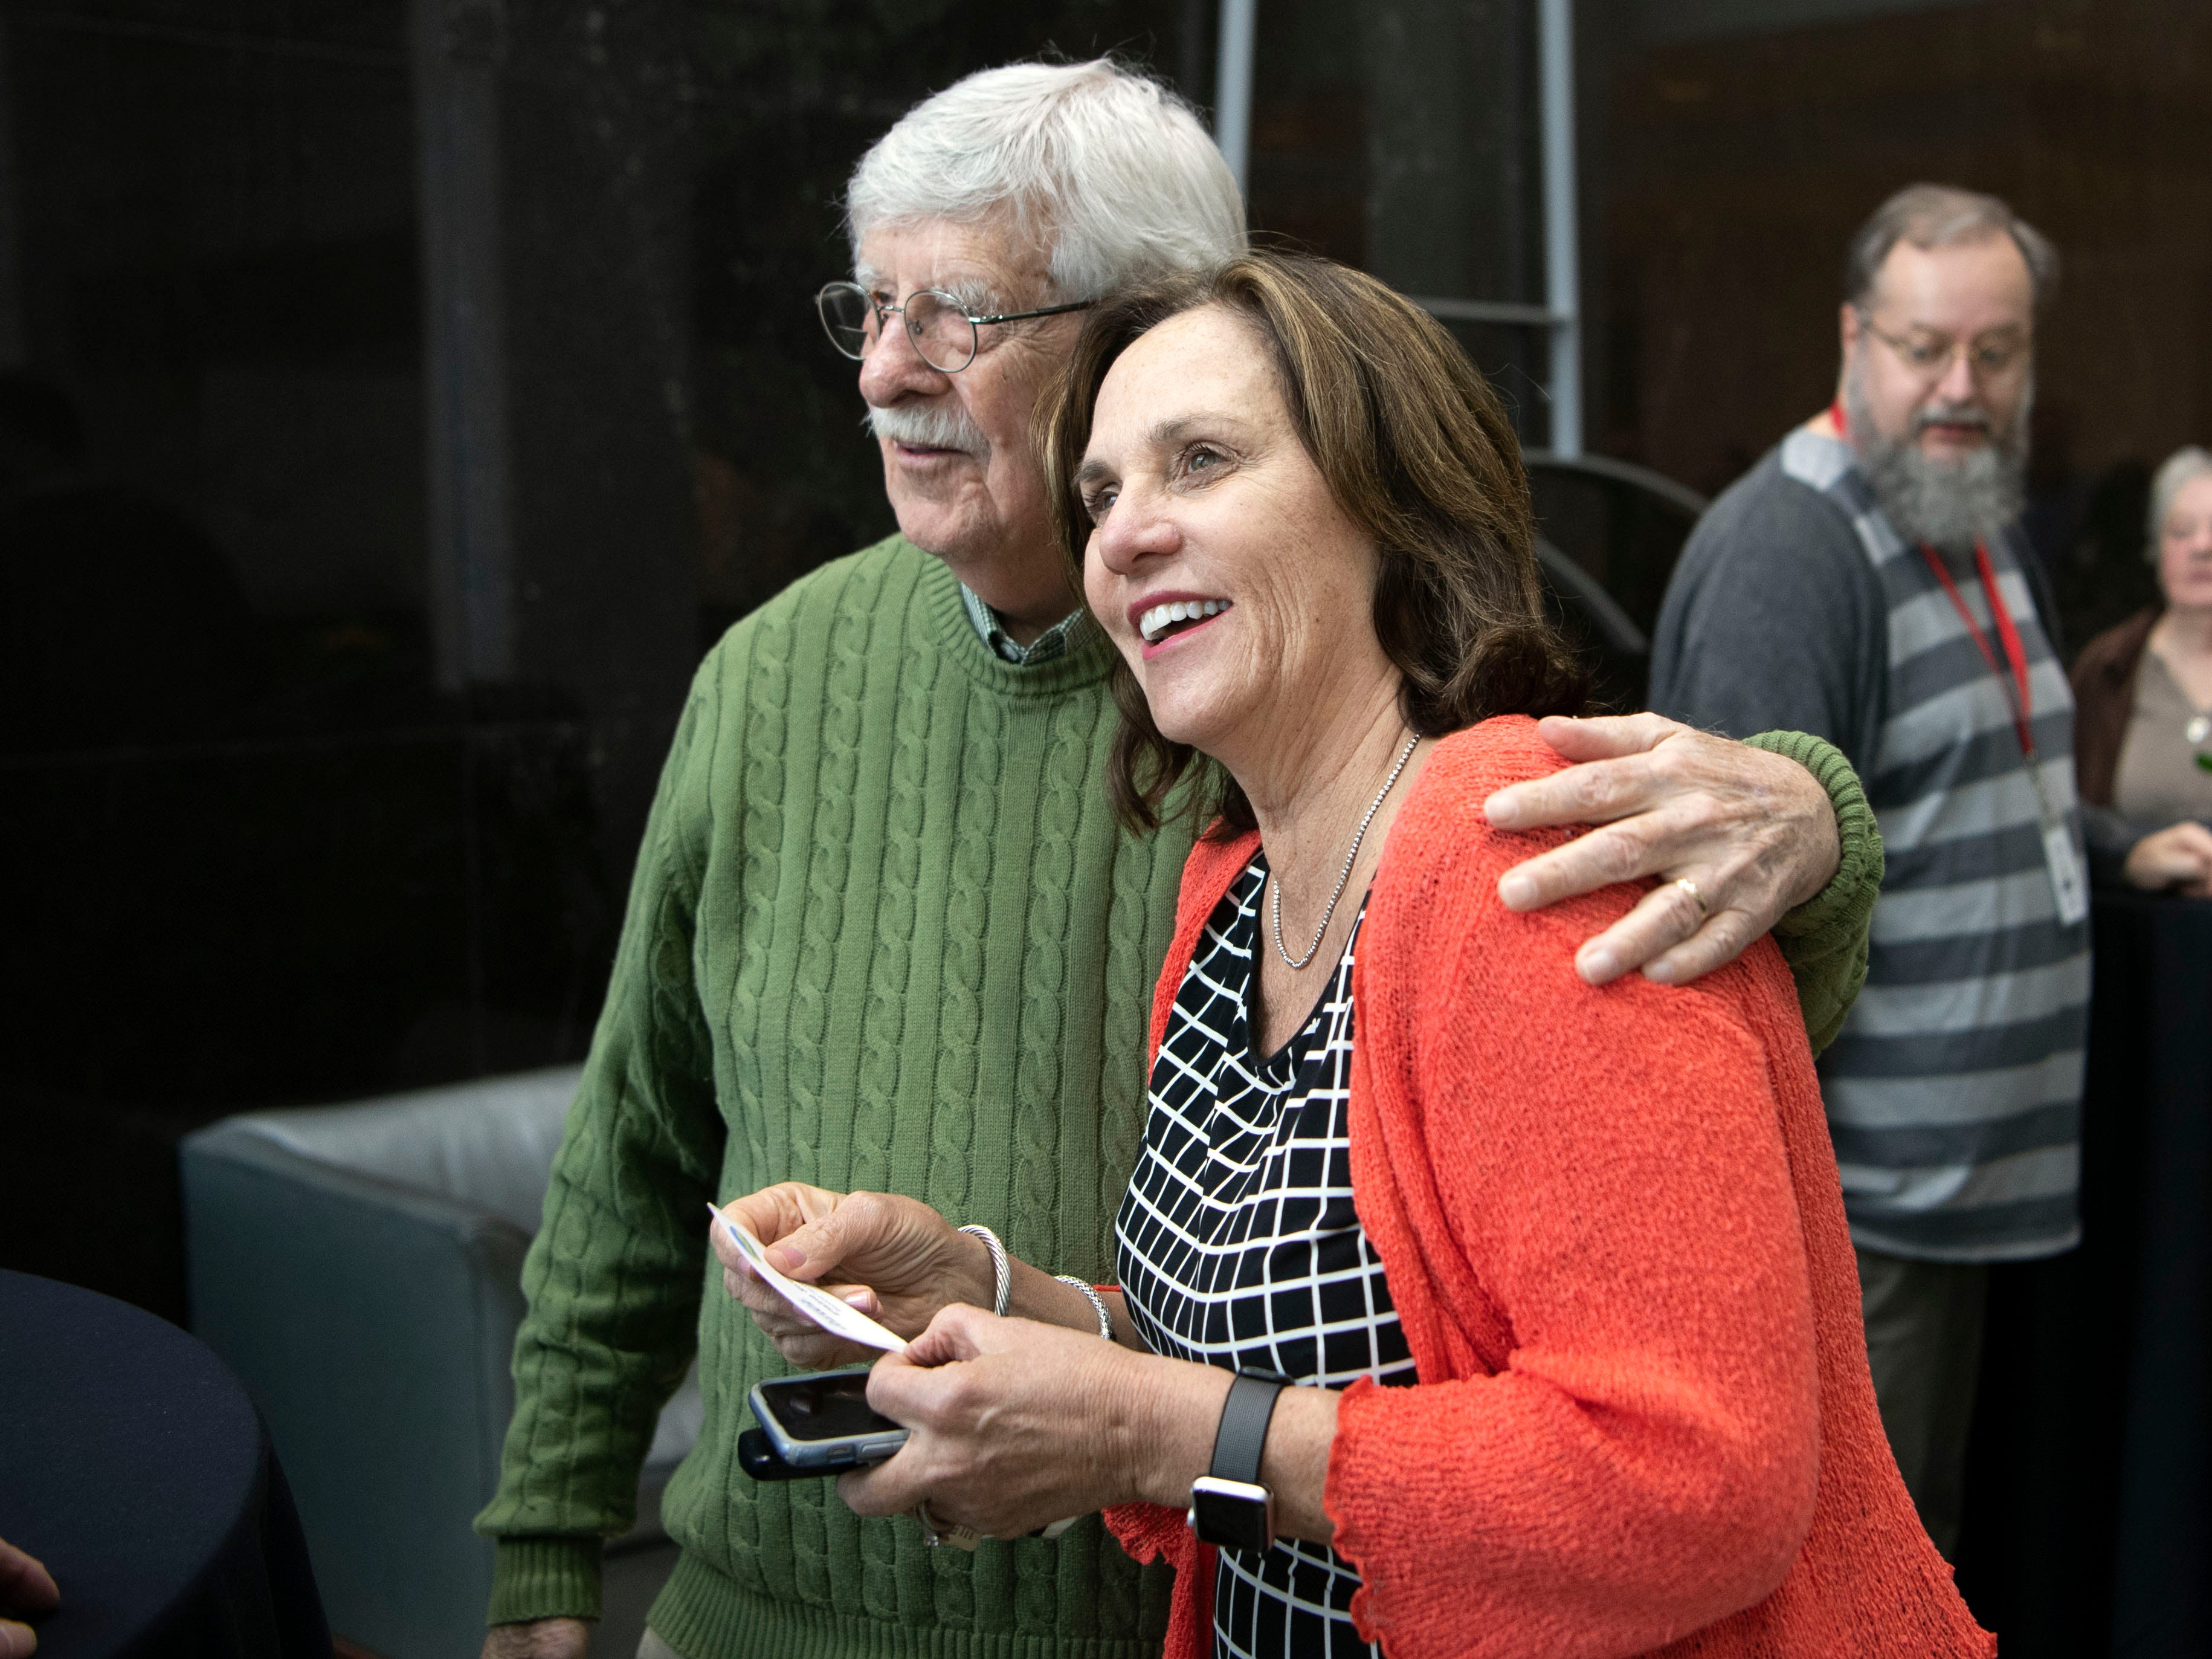 Elaine Streno, executive direction at Second Harvest Food Bank of East Tennessee greets longtime News Sentinel cartoonist Charlie Daniel on Monday, February 11, 2019 during a party recognizing Daniel, outgoing editor Jack McElory